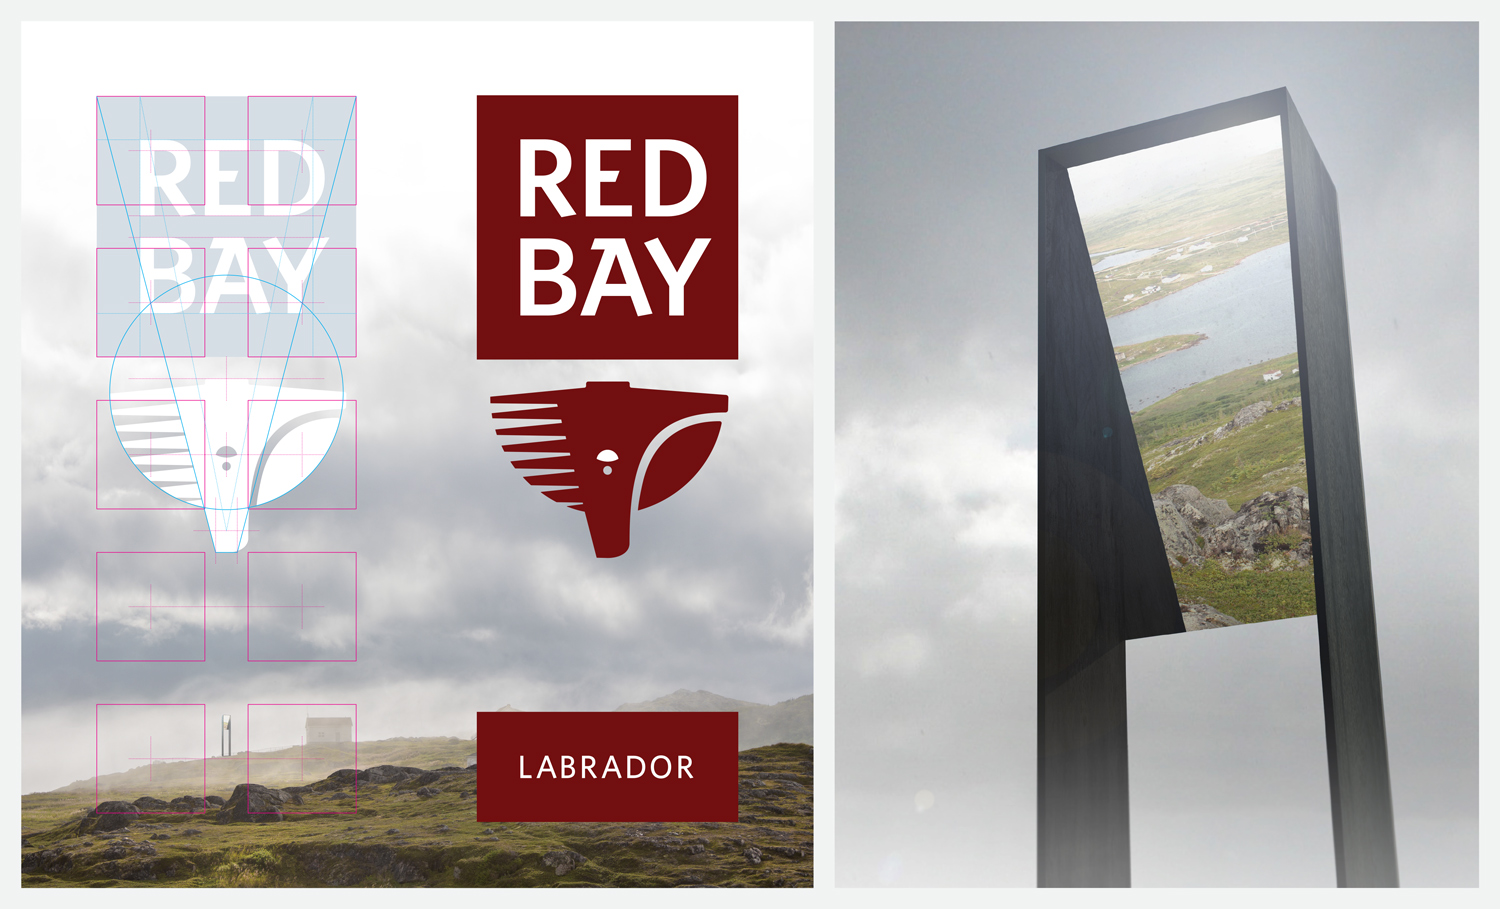 THE RED BAY BRAND In Red Bay, the brand and the built environment are inextricably linked.